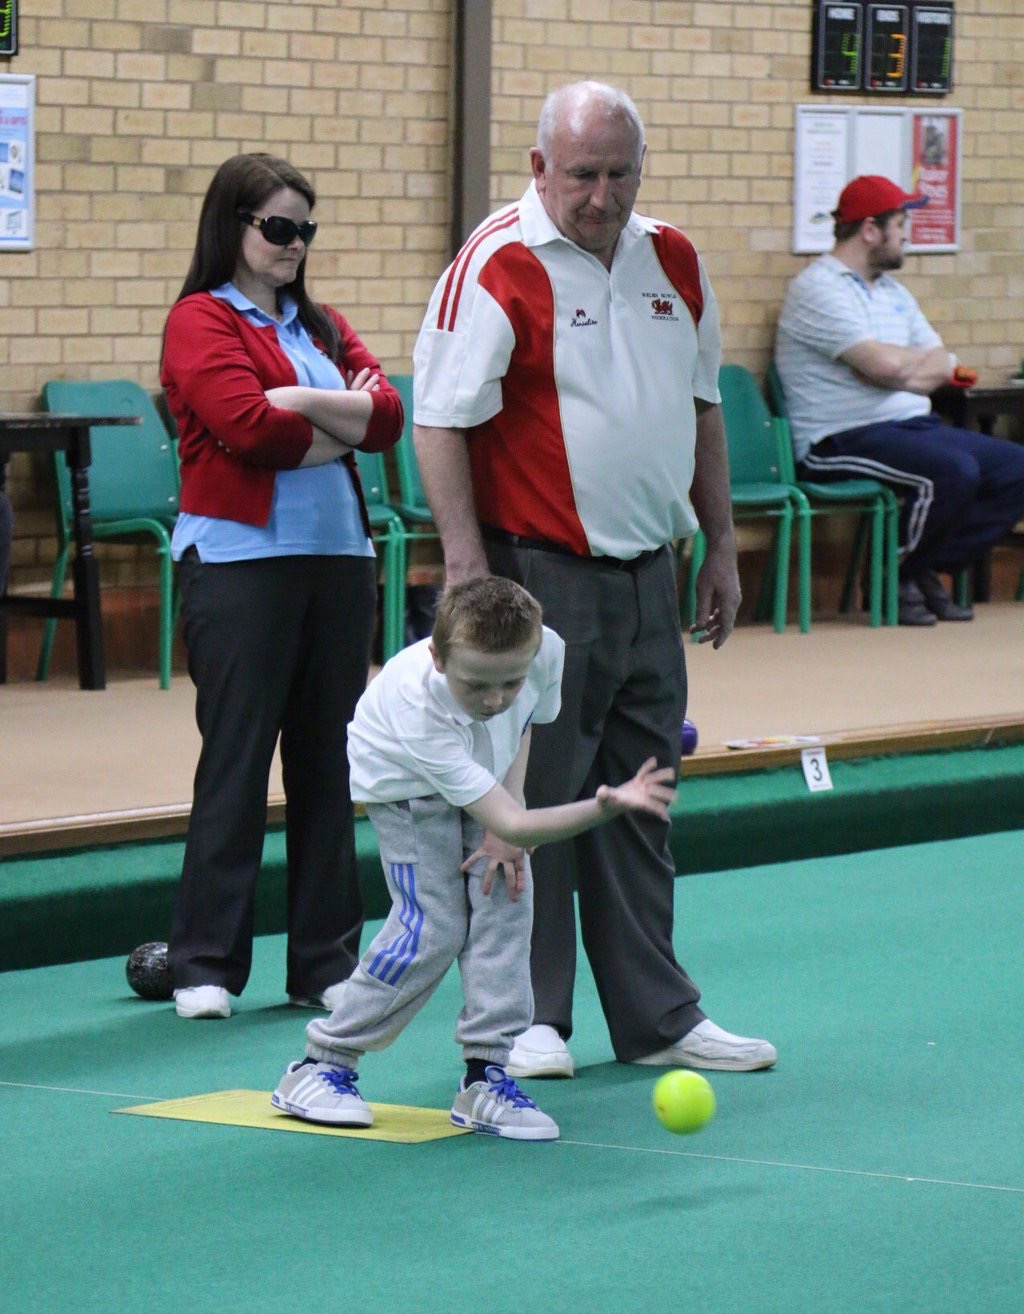 taking part in the bowls development day